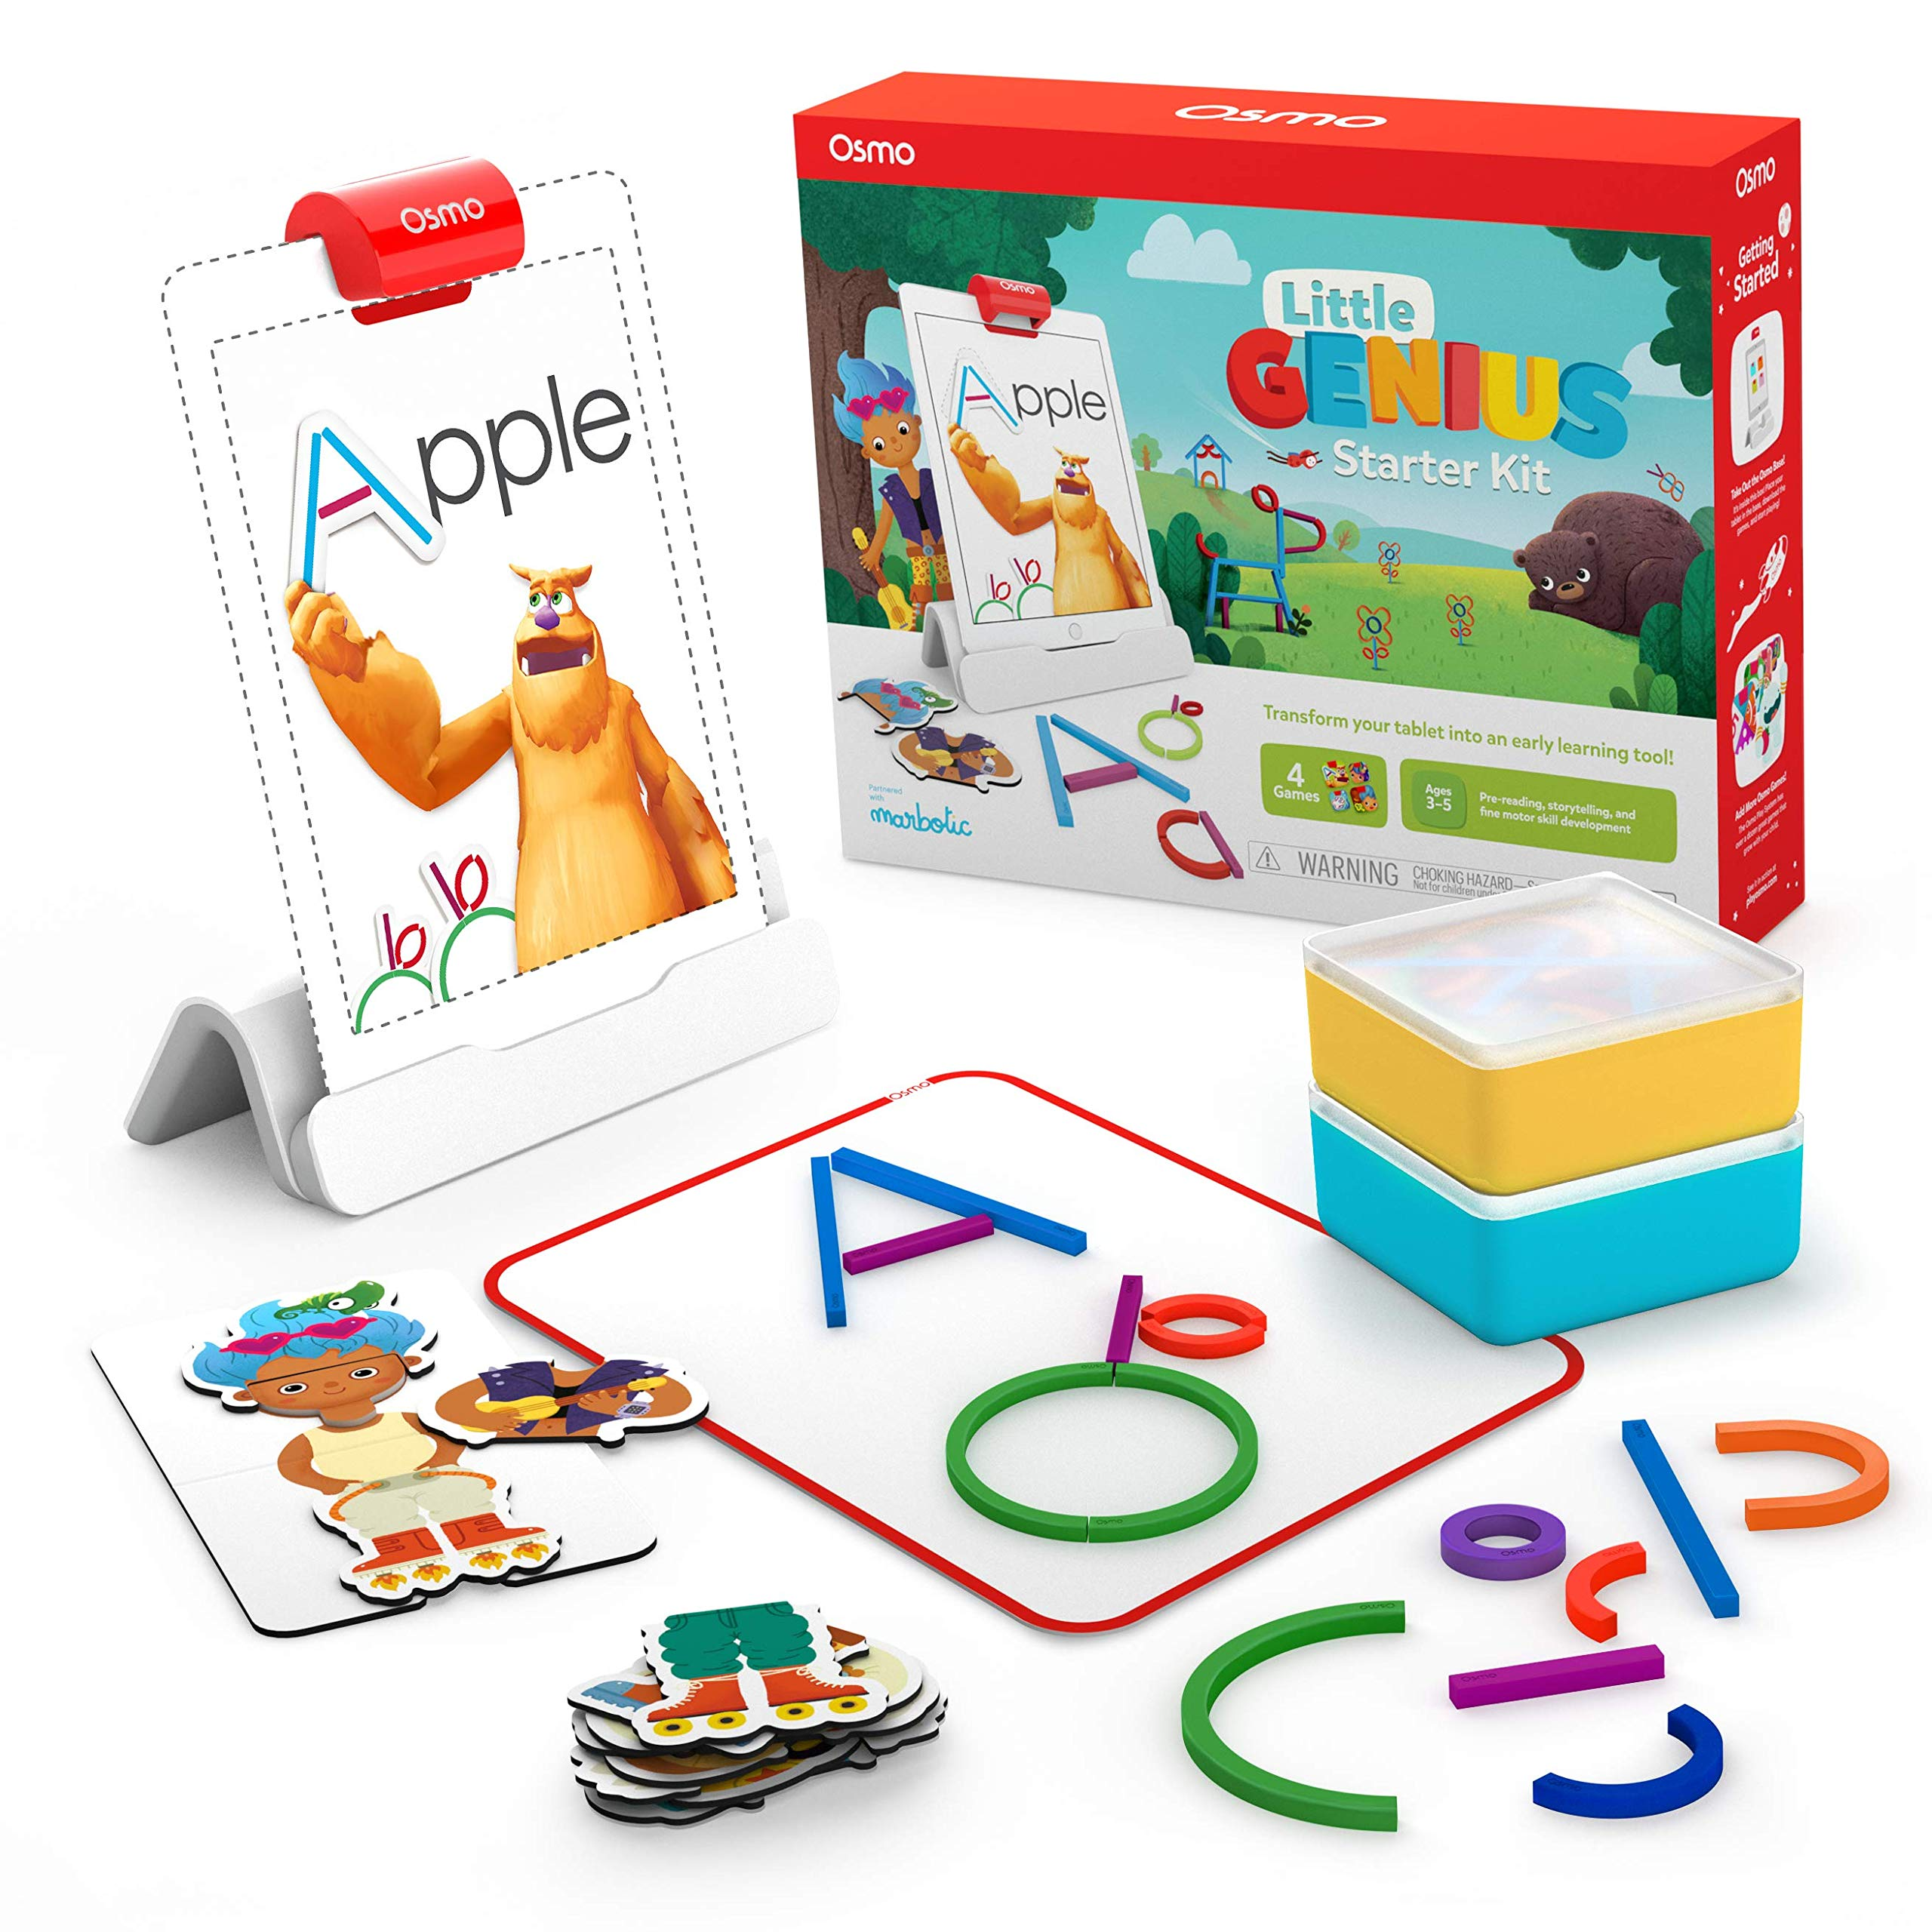 Osmo - Little Genius Starter Kit for iPad - 4 Hands-On Learning Games - Preschool Ages - Problem Solving, & Creativity iPad Base Included